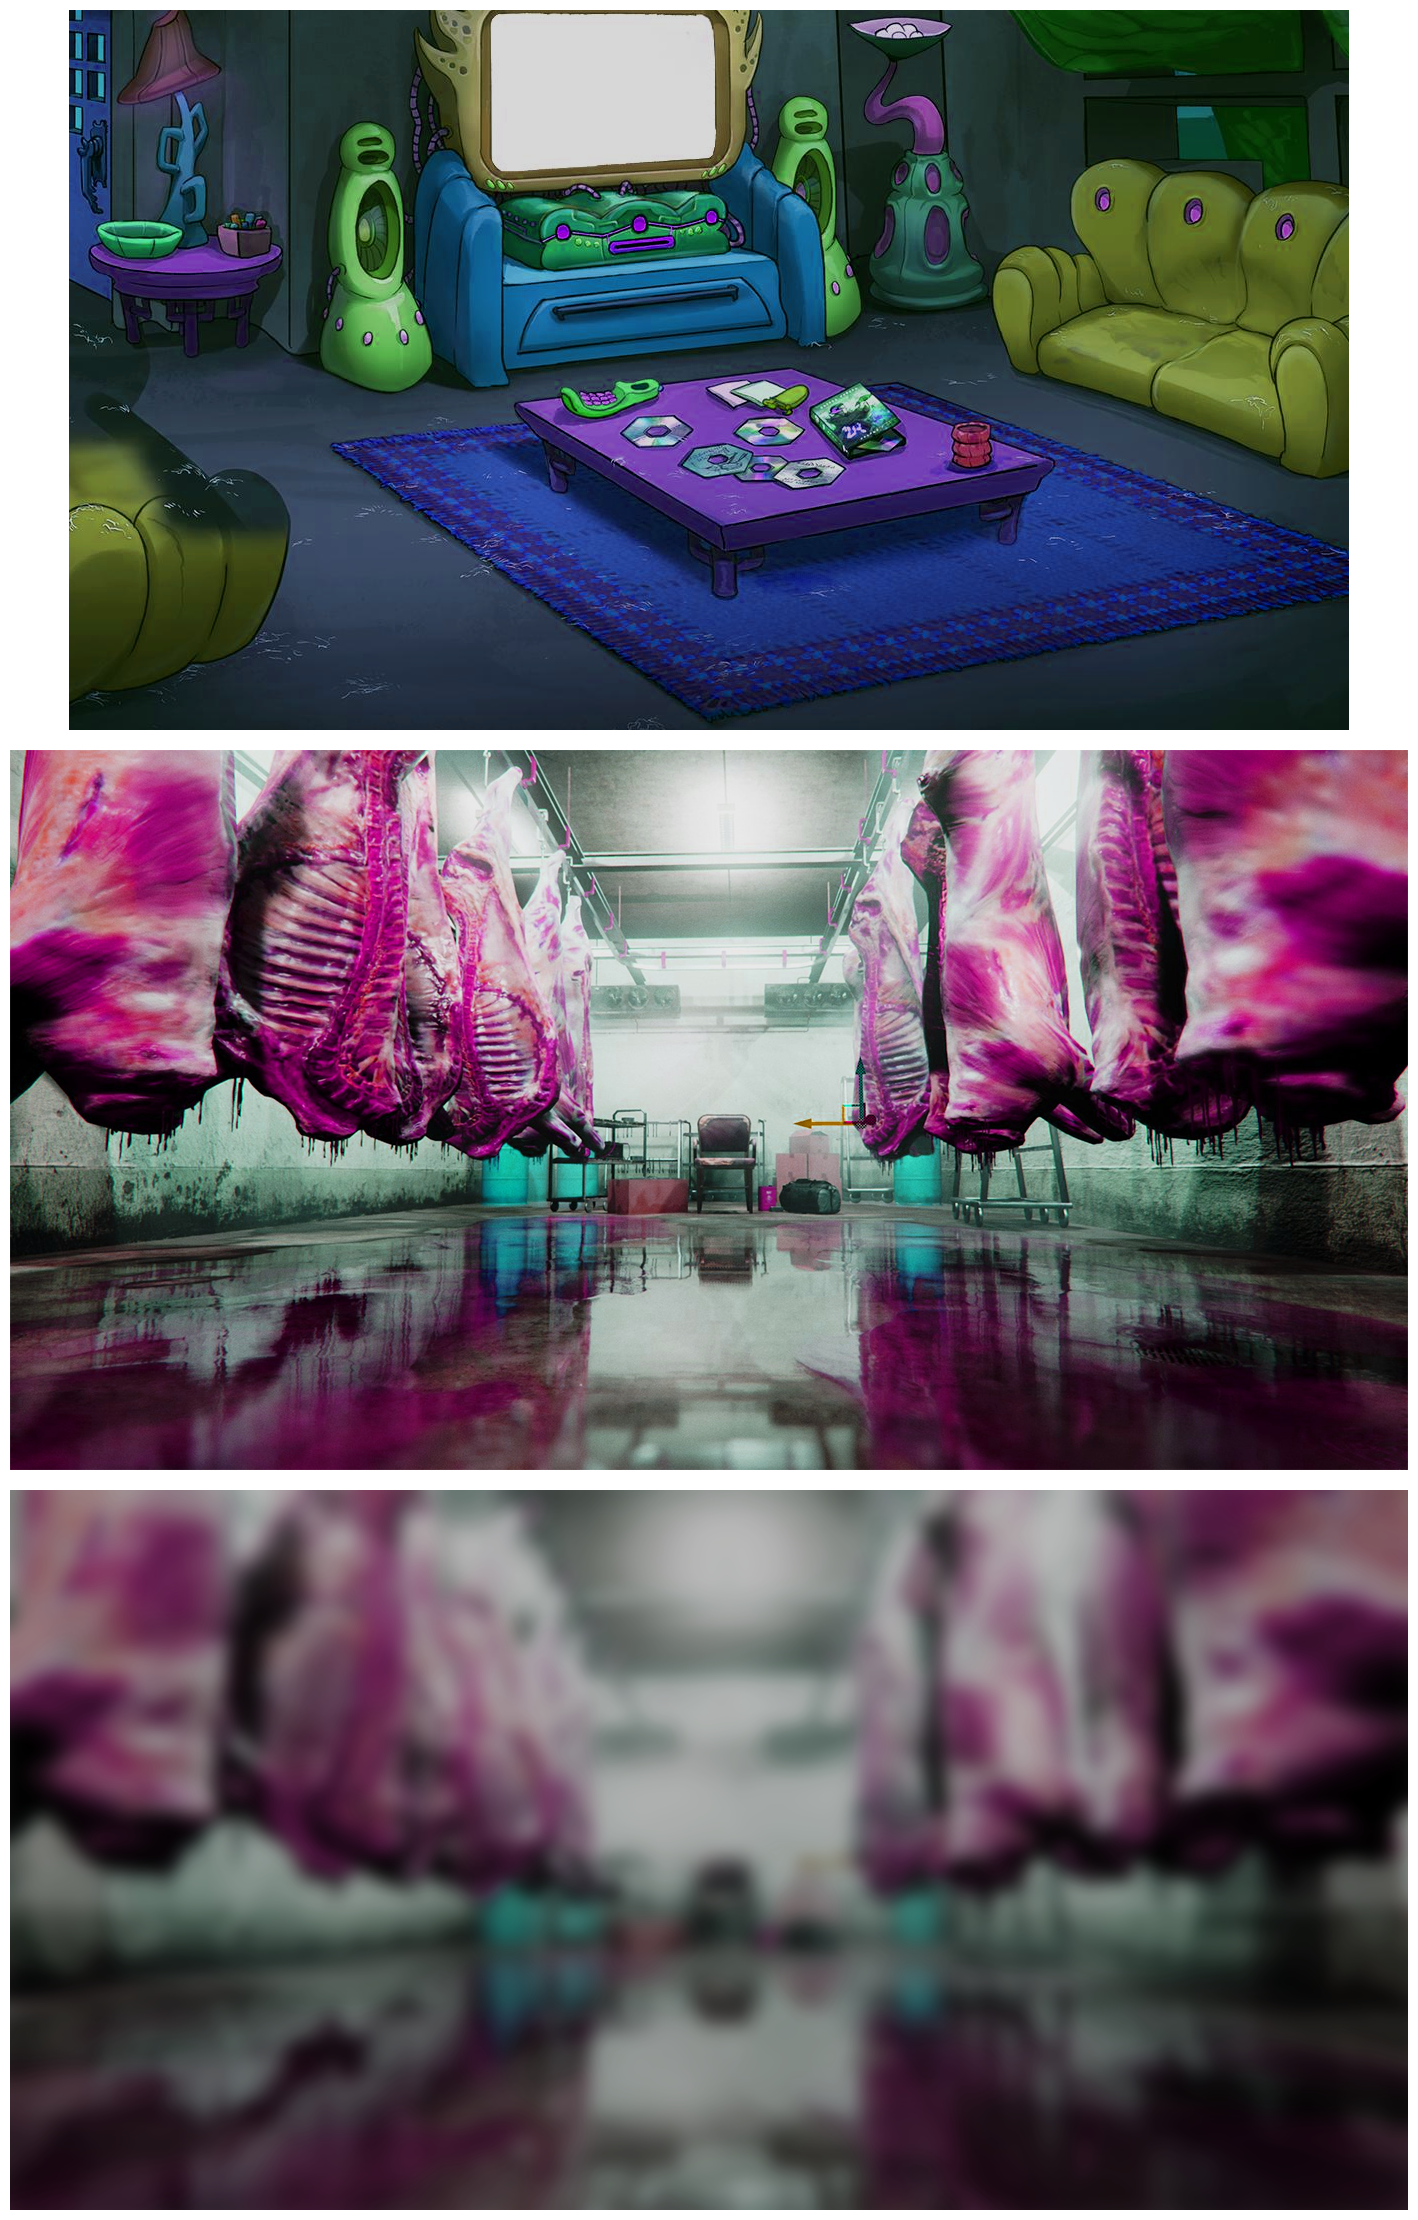 Backgrounds (Scrapped)